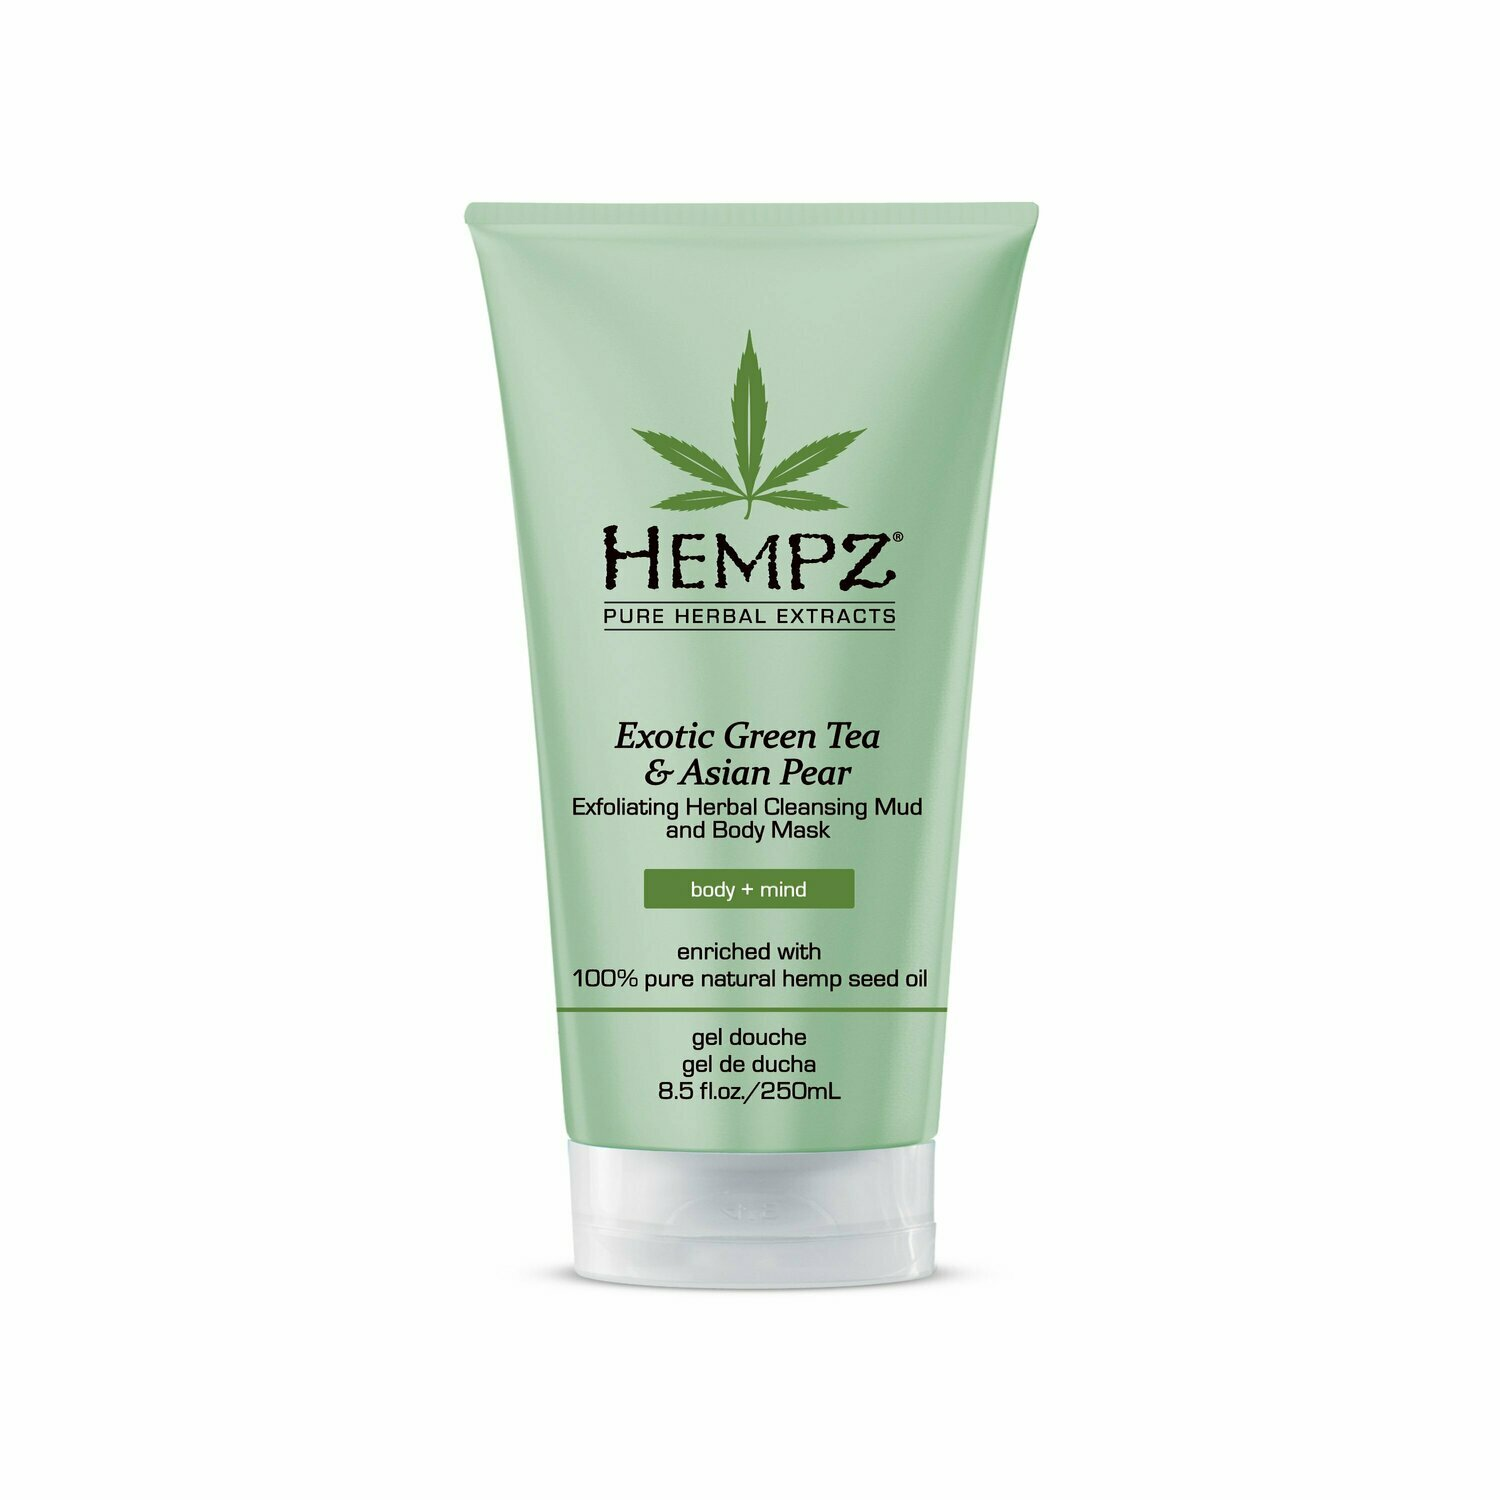 Hempz Exfoliating Herbal Cleansing Mud and Body Mask каолиновая маска-скраб